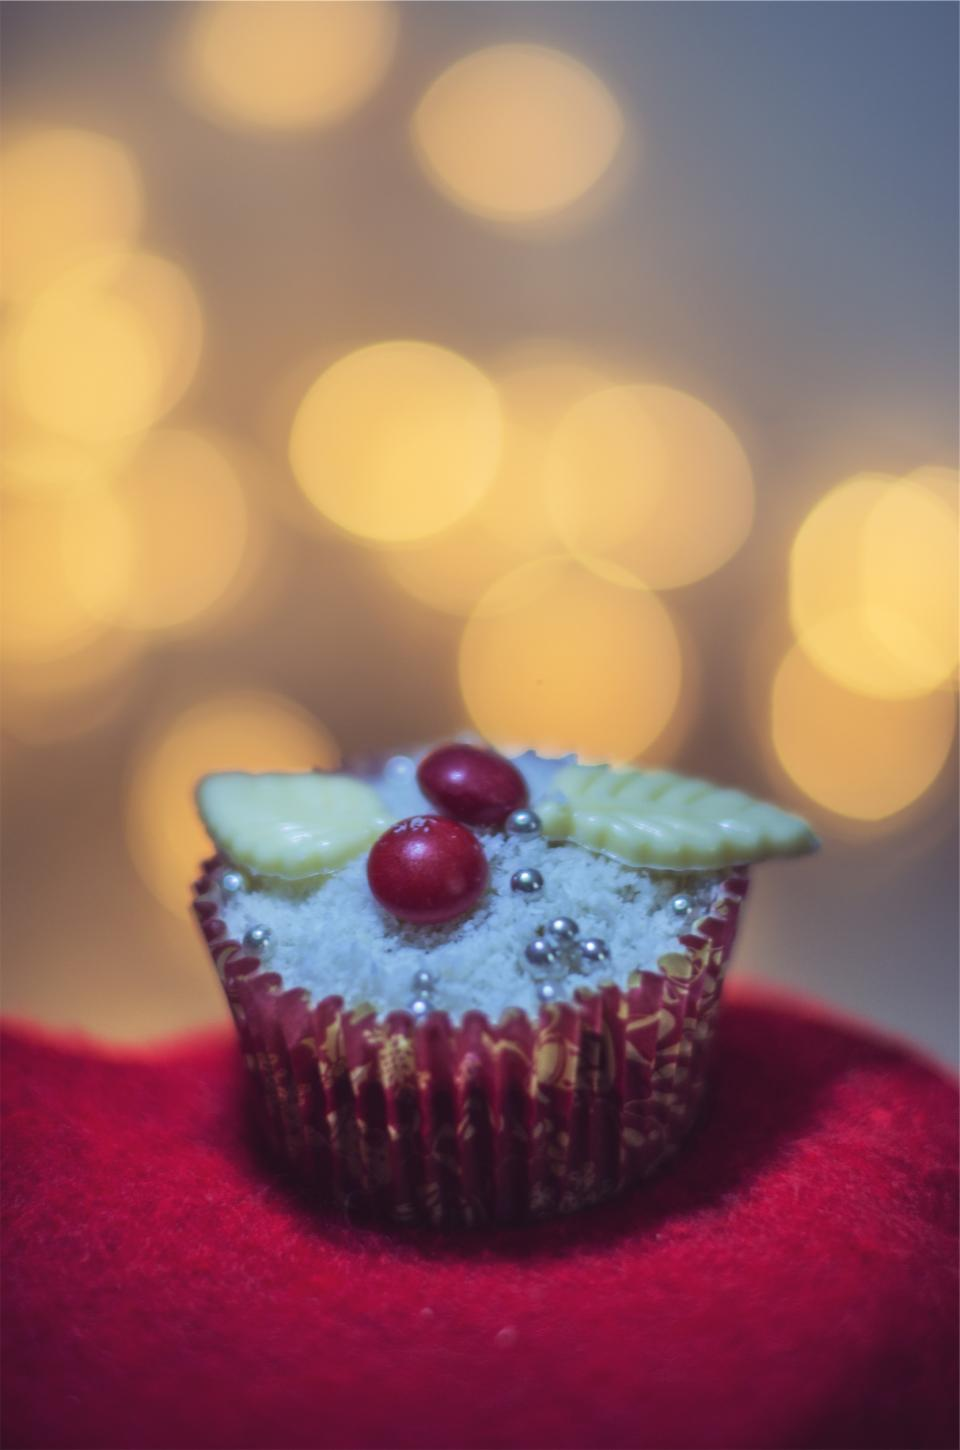 cupcake dessert icing sweets treats festive christmas